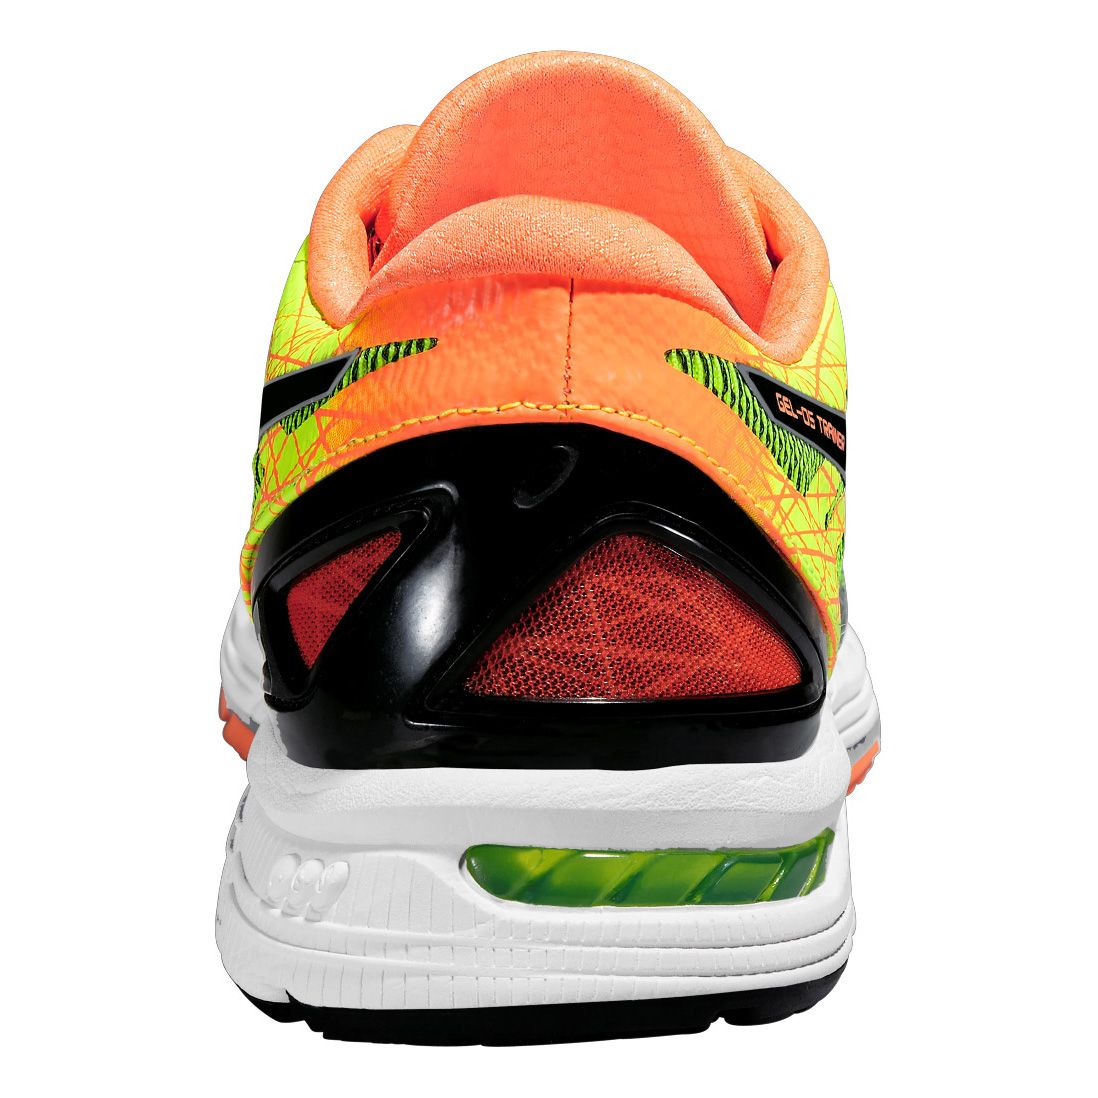 stockists of asics trainers mens